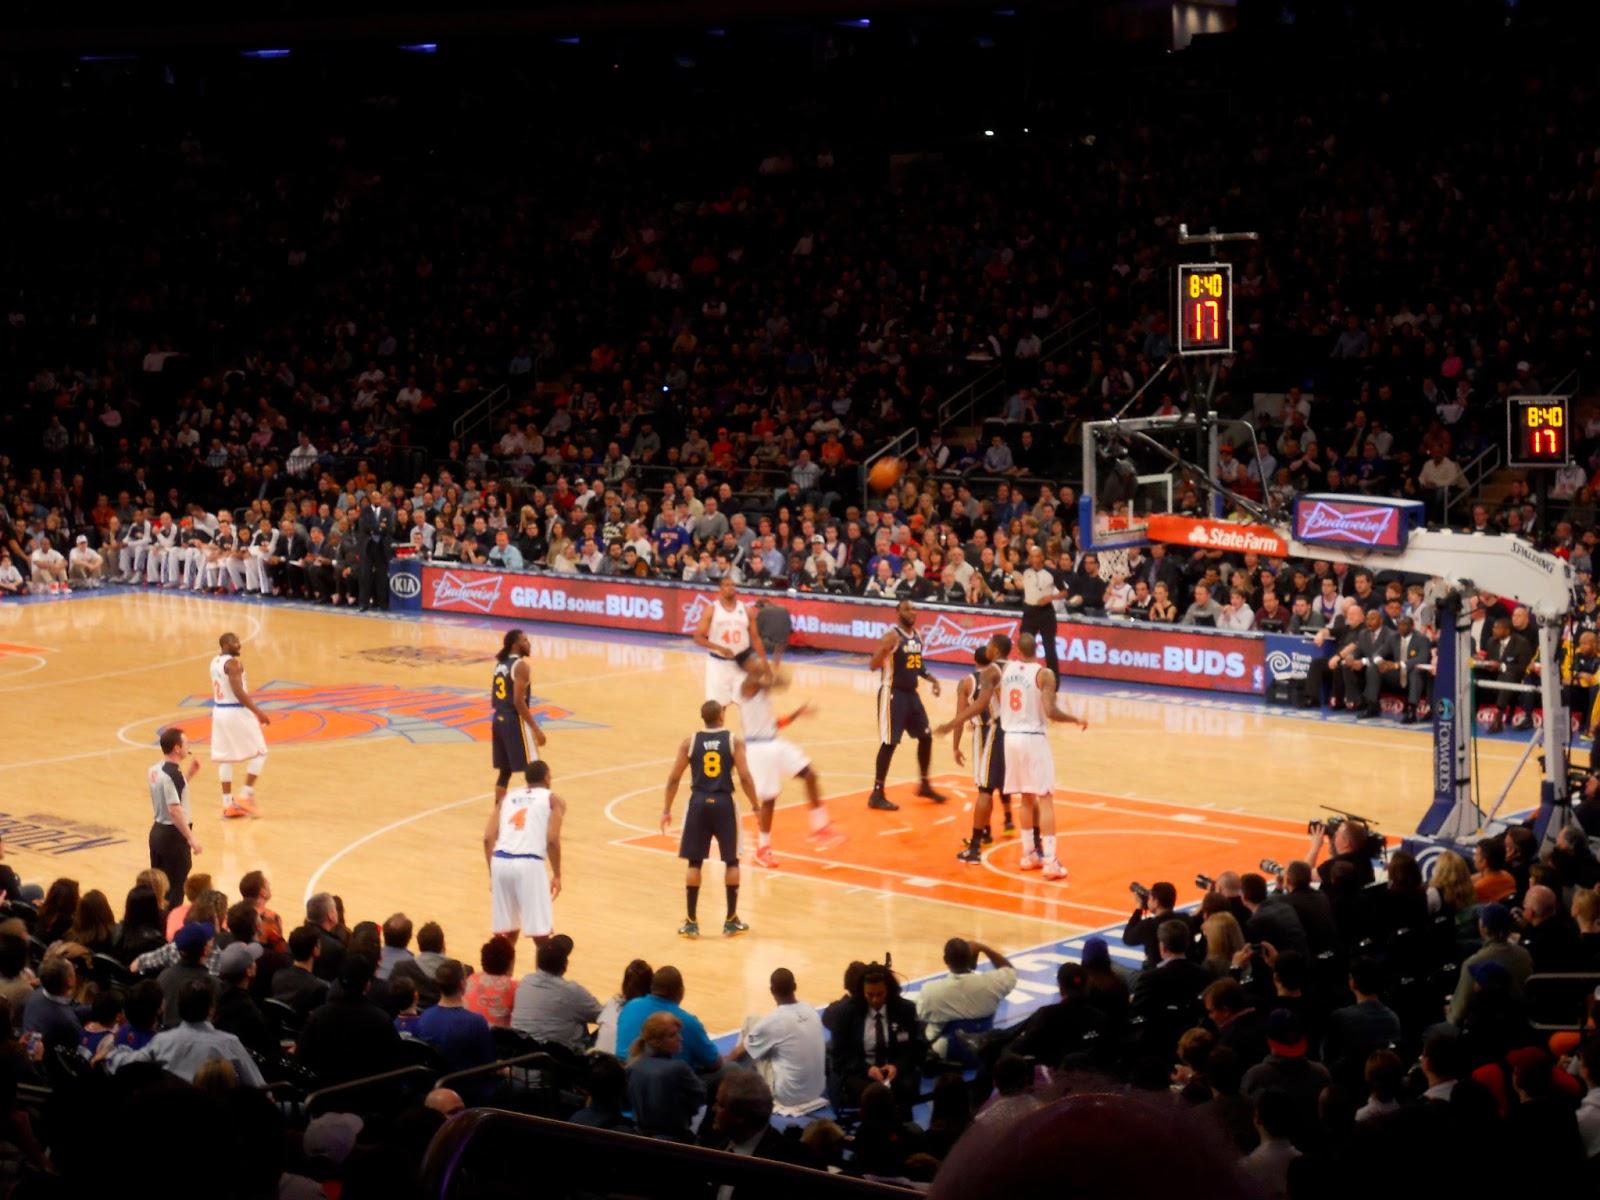 A North Star In An Eastern Sky Touristy Knicks Game At Madison Square Garden